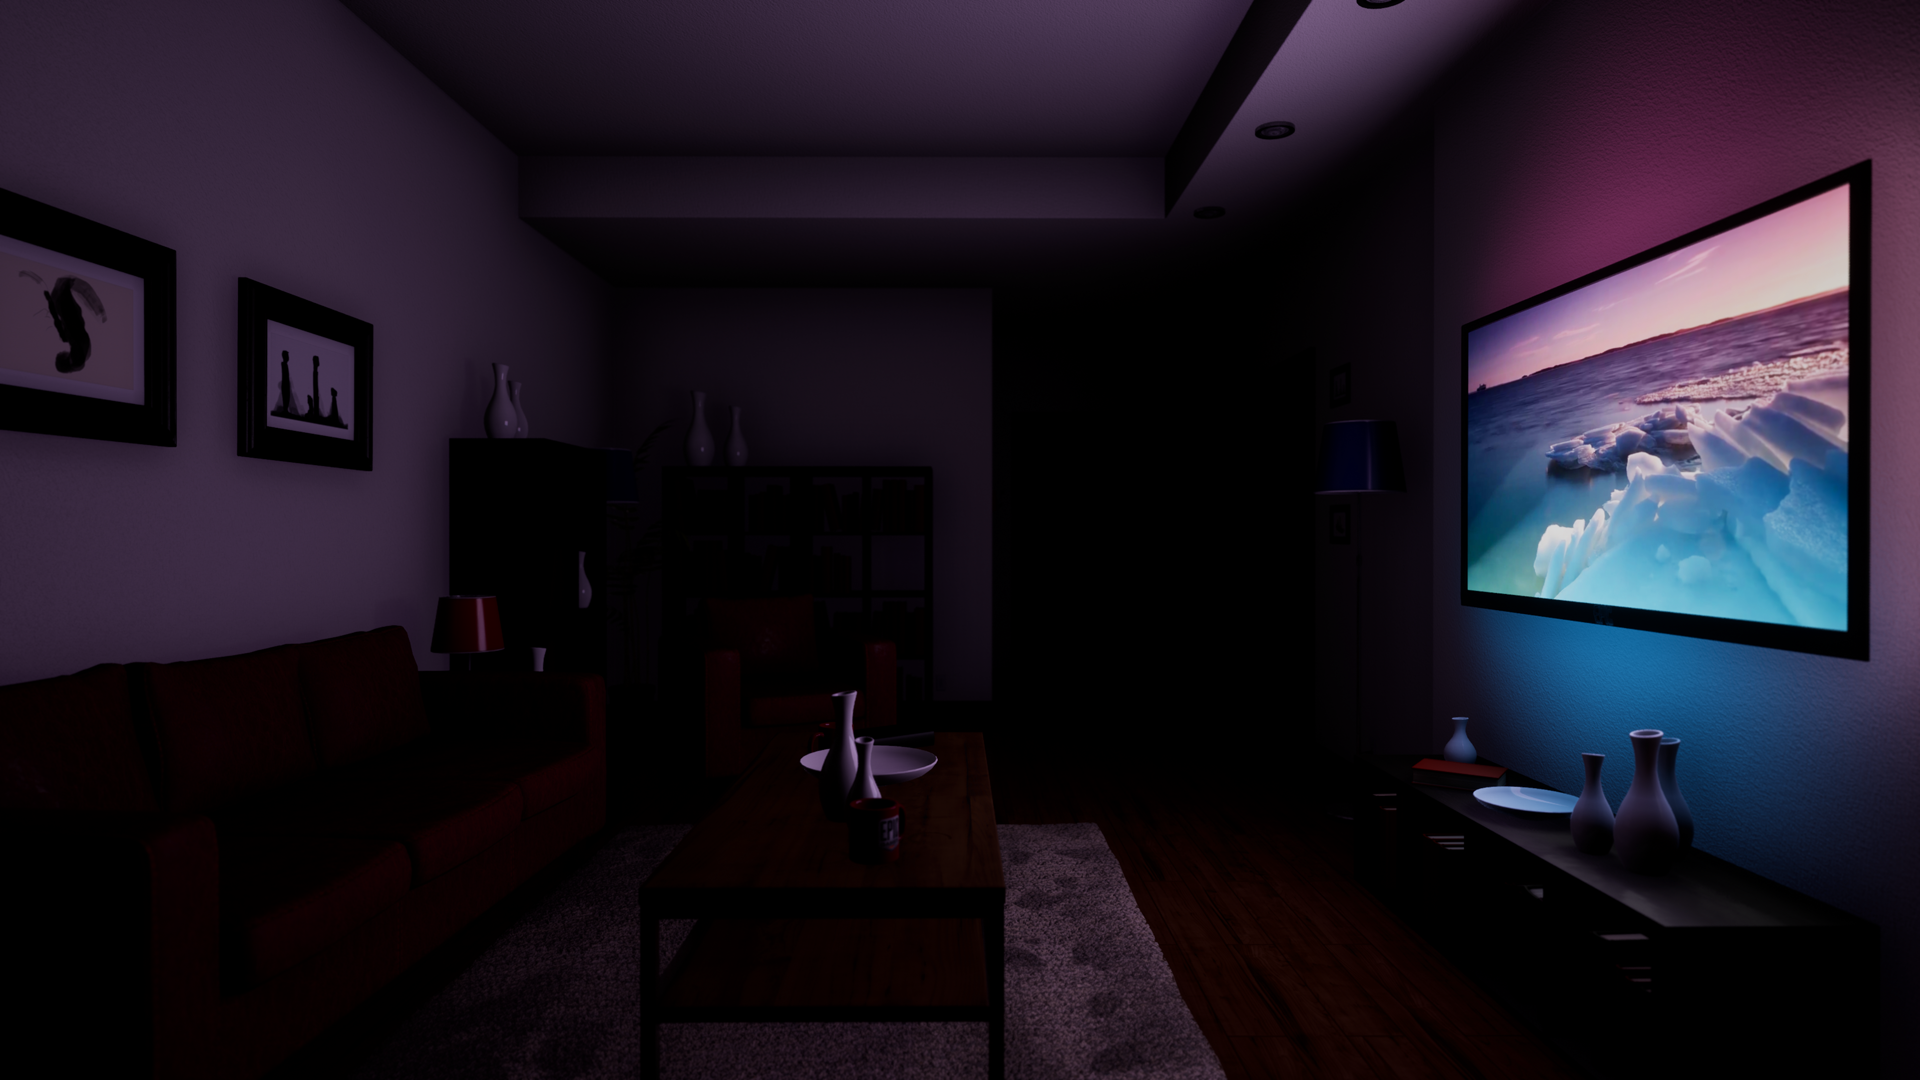 Video Ambient Lighting By Pedramnavin